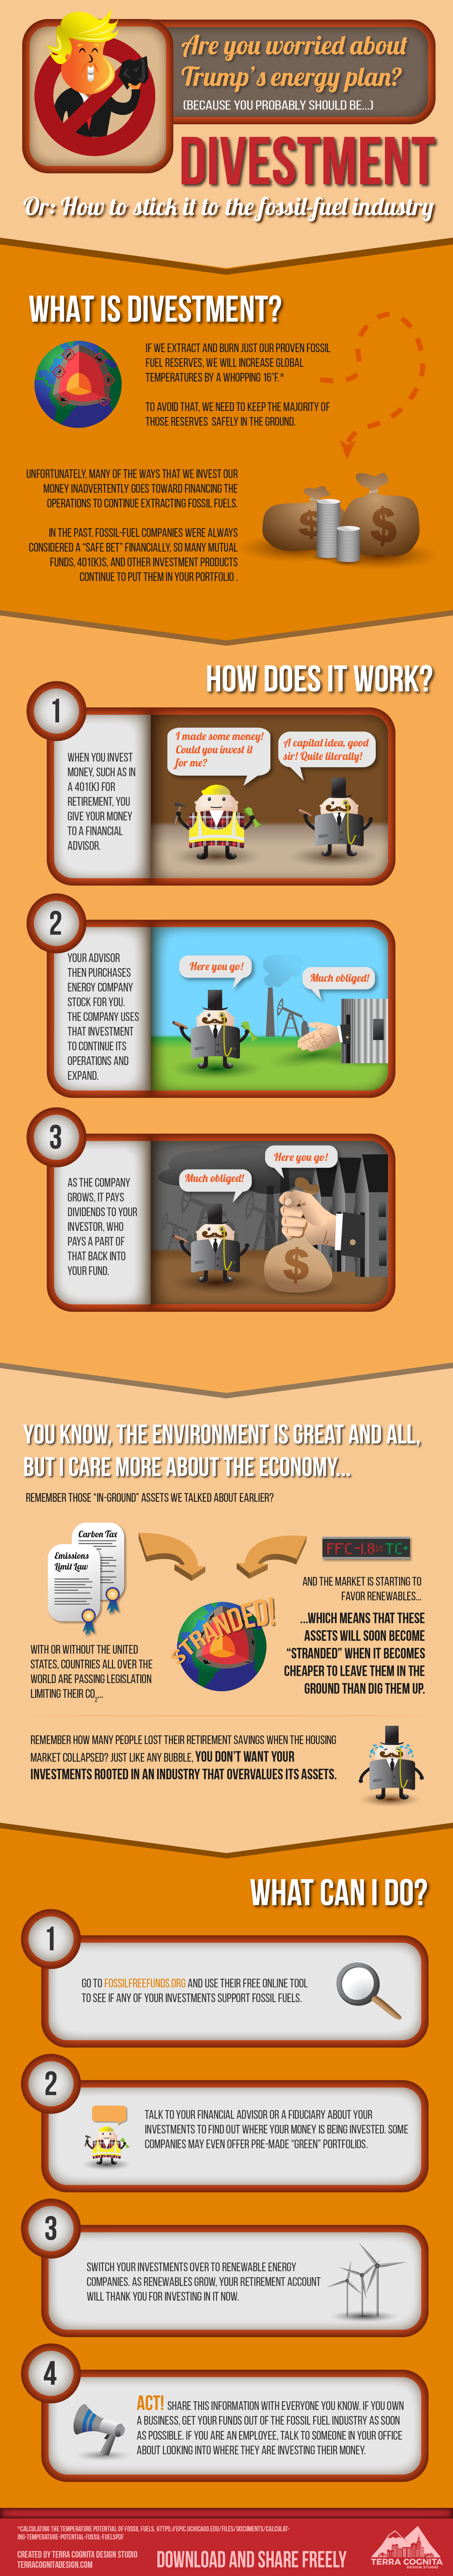 Divestment Infographic.png